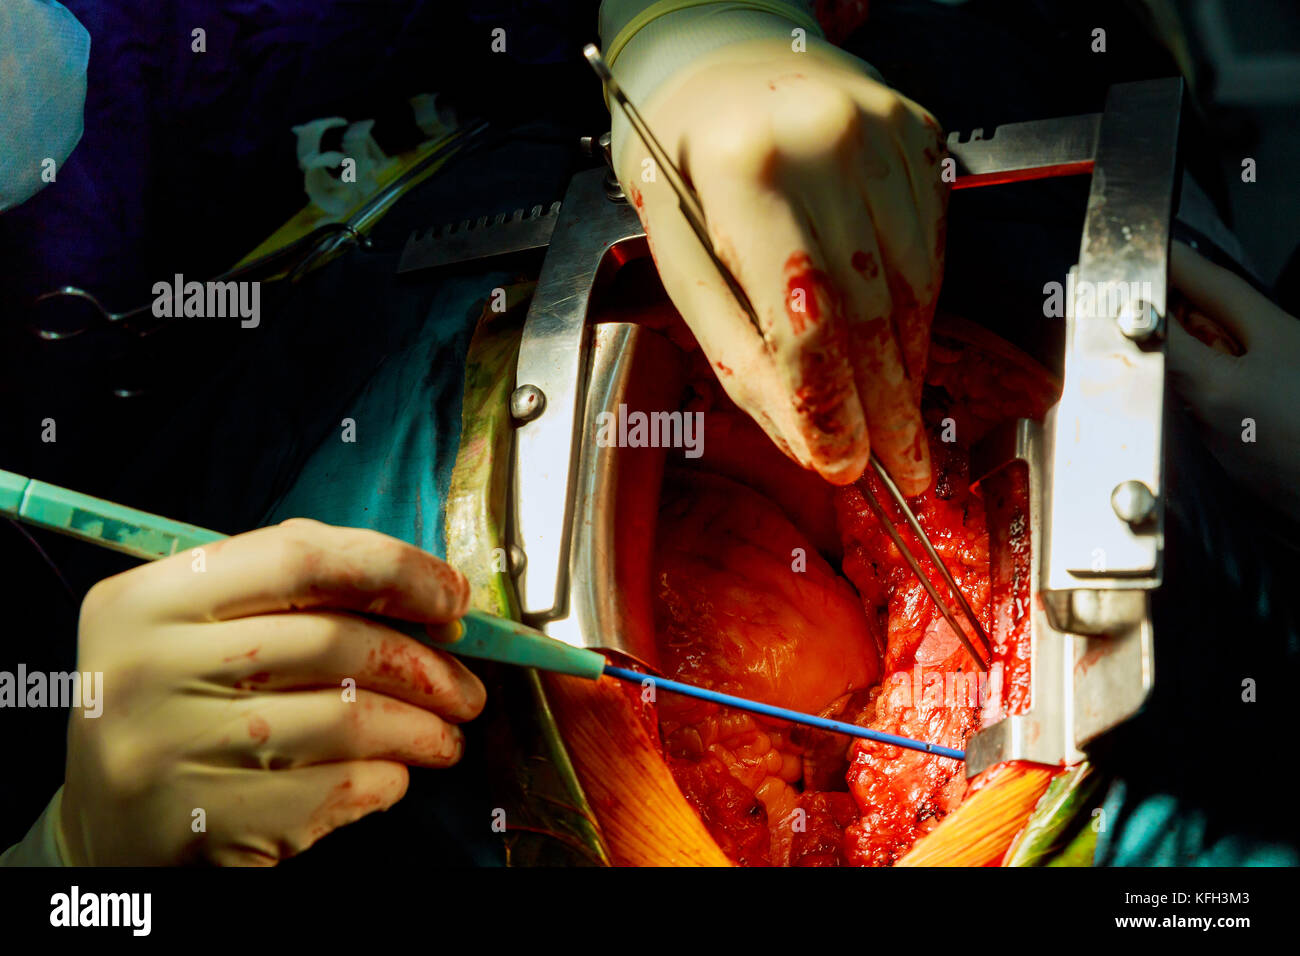 Surgeon doctor operating wearing lamp lighting electric cautery and flex clamp, heart surgery intervention close - Stock Image